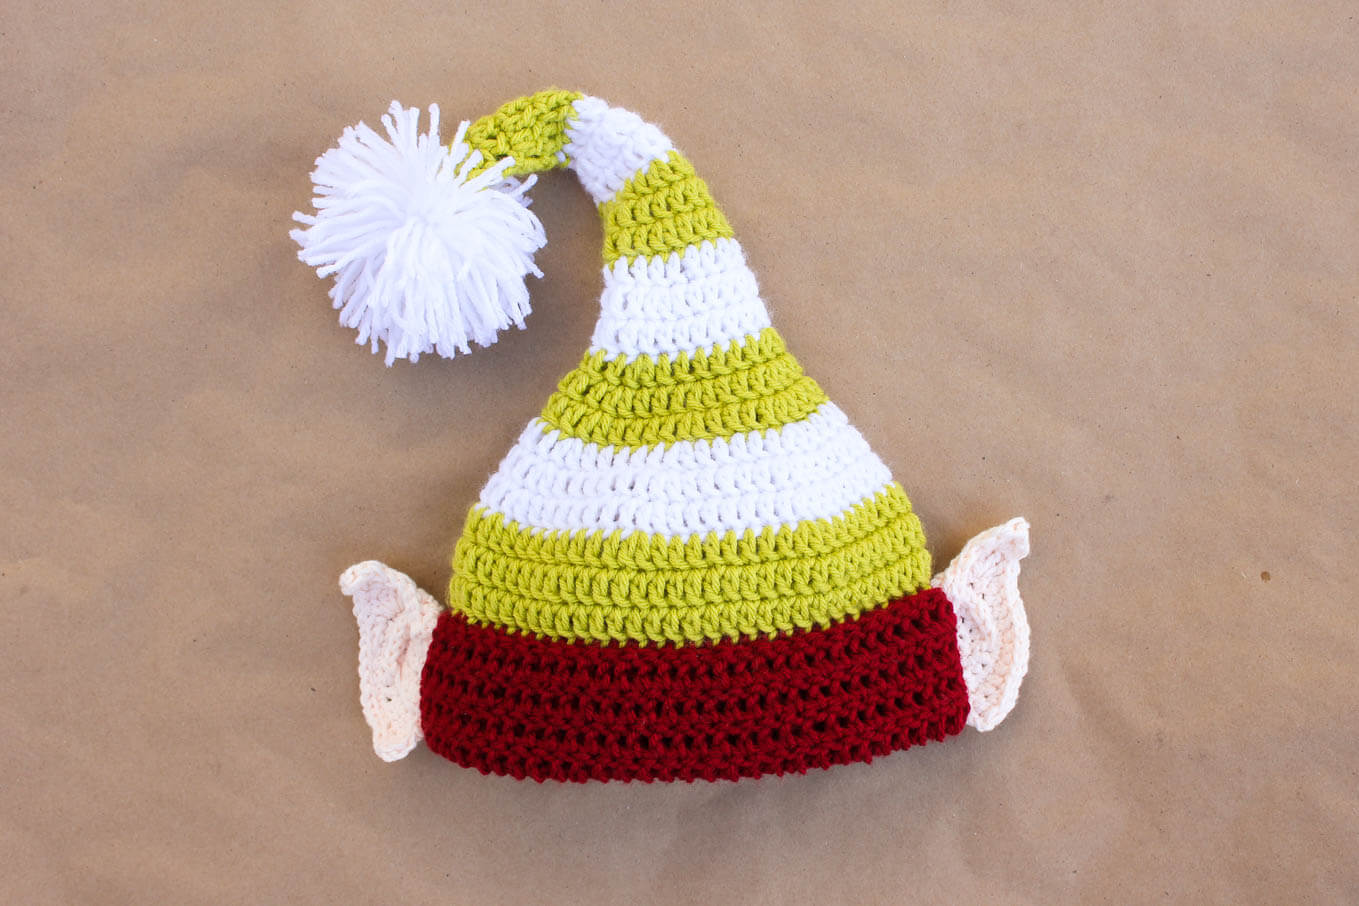 Child Elf Hat Crochet Pattern : Santas Helper Free Crochet Elf Hat Pattern (With Ears!)